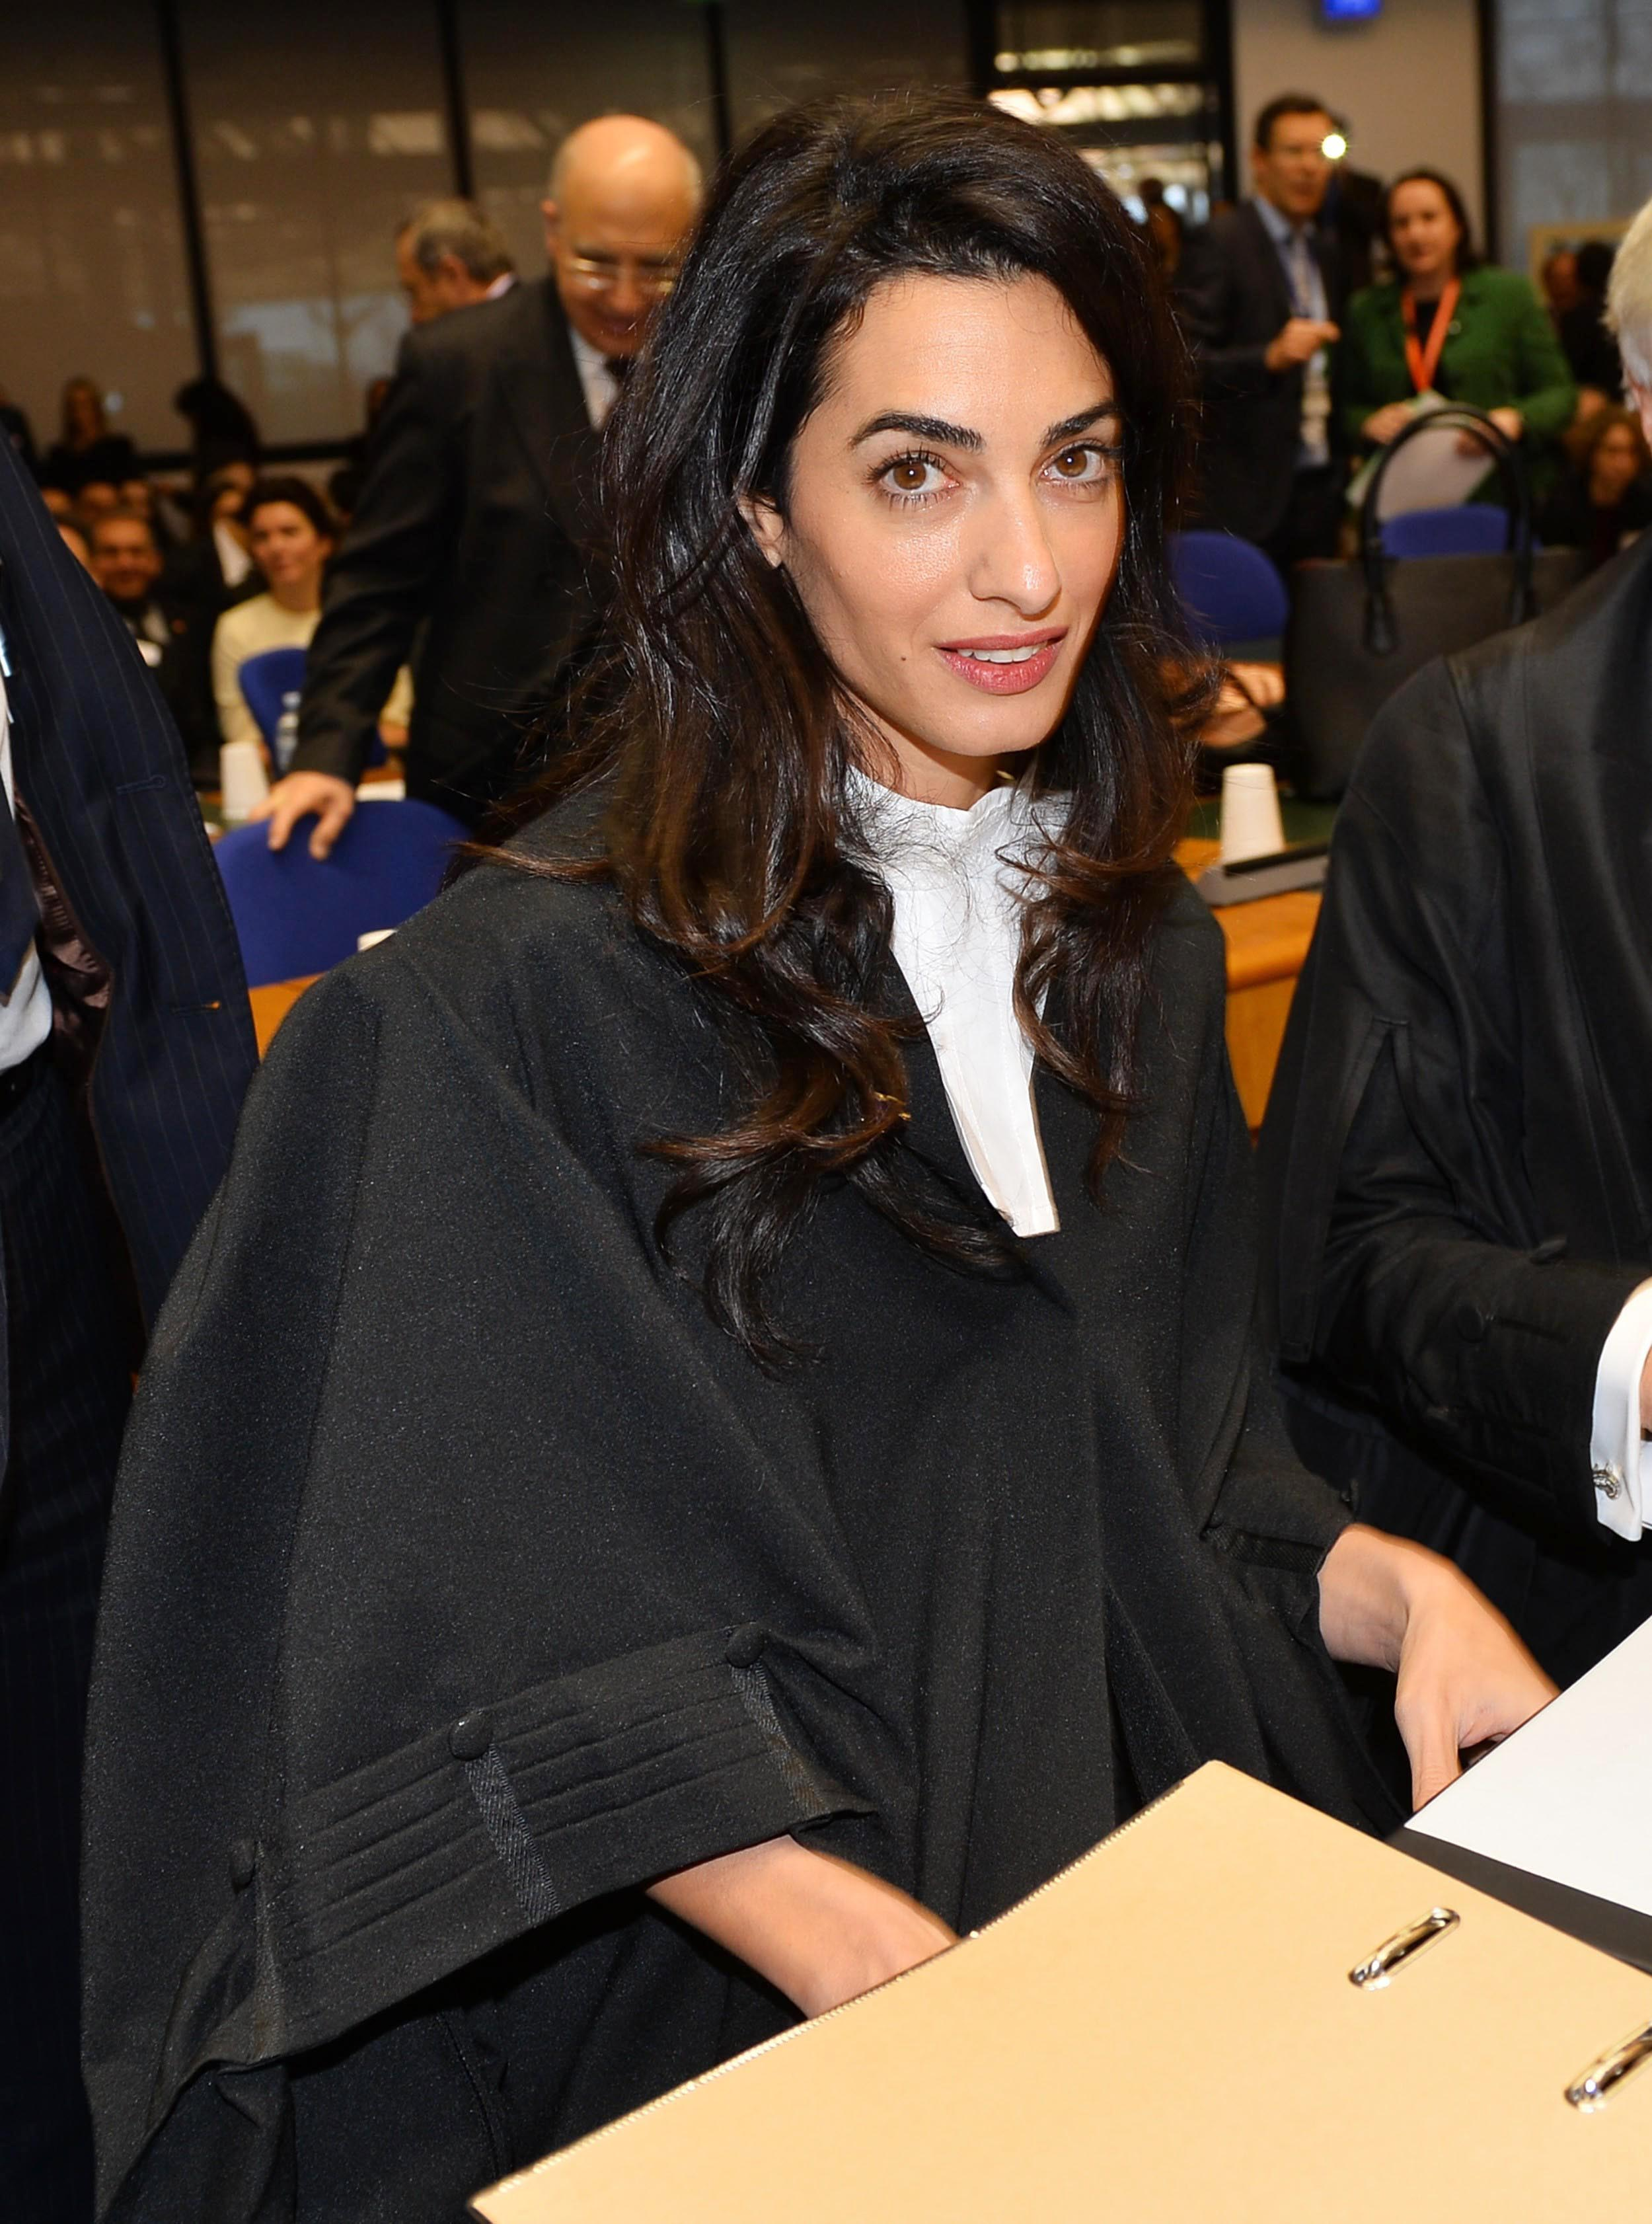 Amal Clooney represents Armenia during genocide denial case in Strasbourg